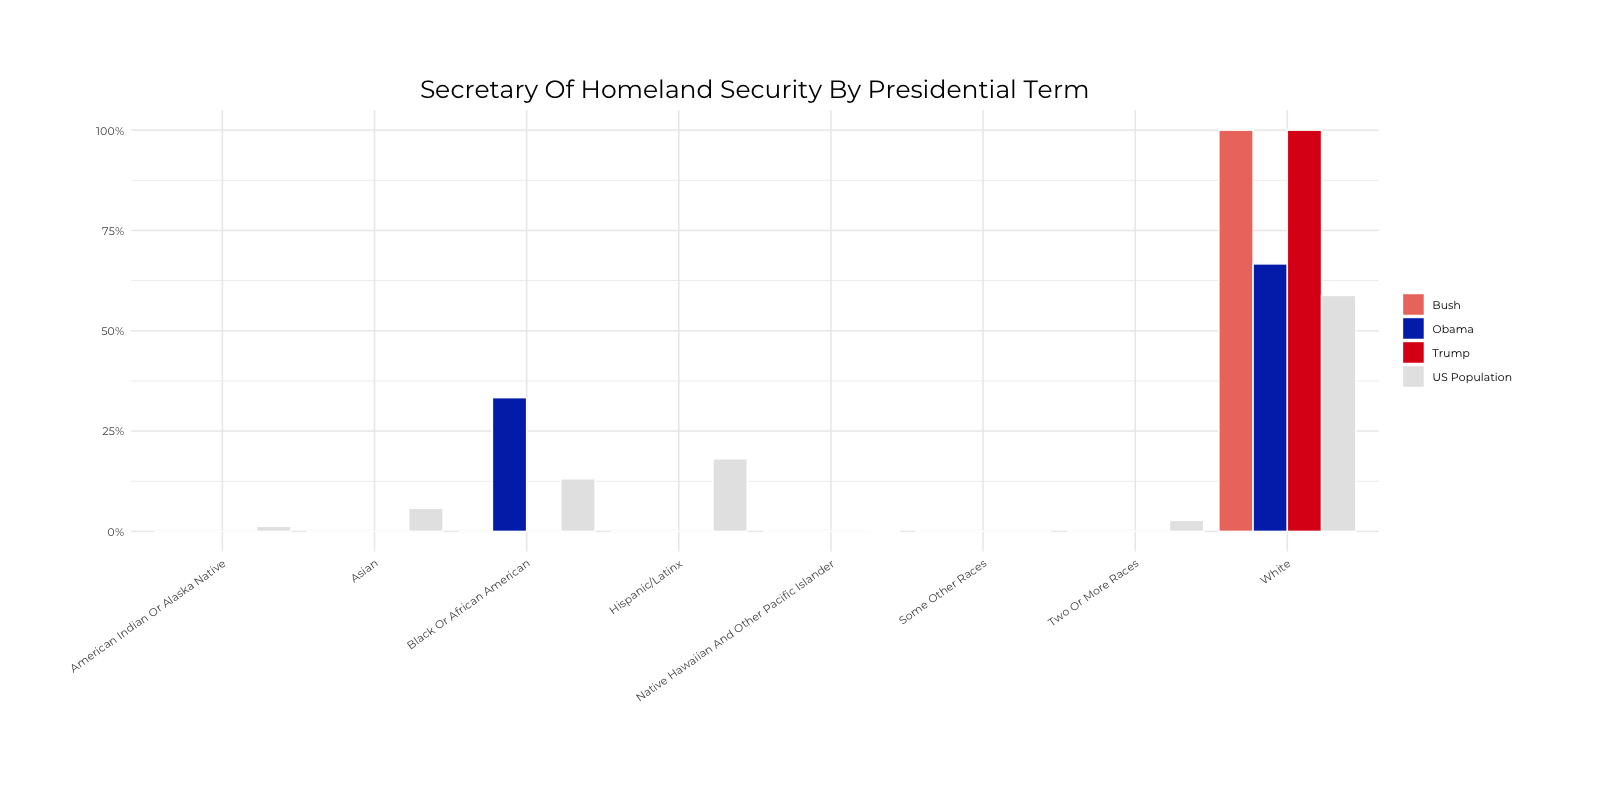 Graph about Racial Composition Comparison of Secretary of Homeland Security by Presidential Terms. More detailed text description below.